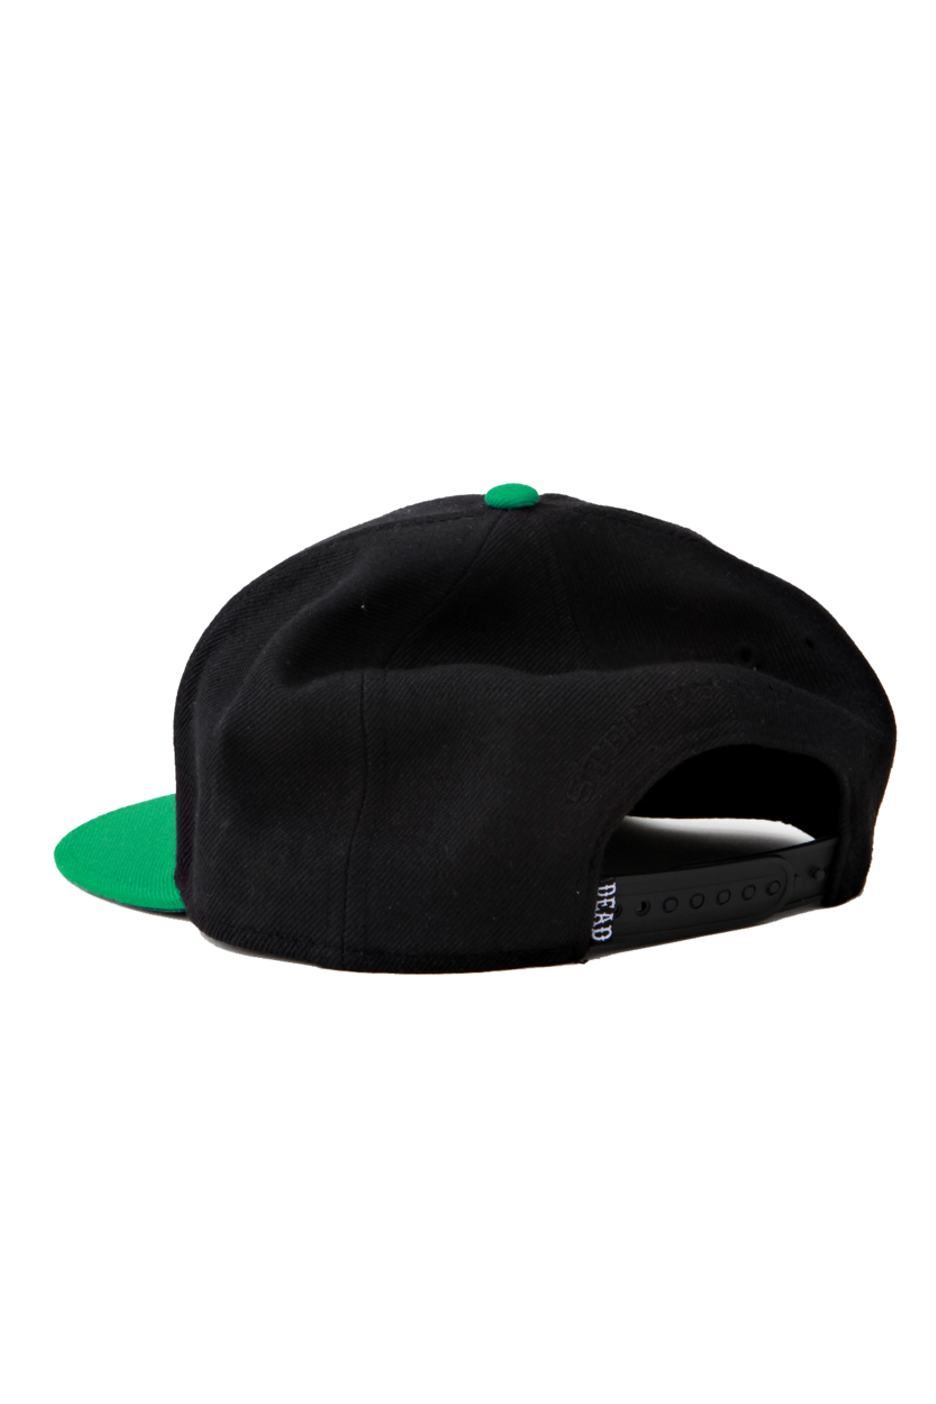 Drop Dead - War Pig Black Green Snapback - Cap - Impericon.com US fd16c7d85855